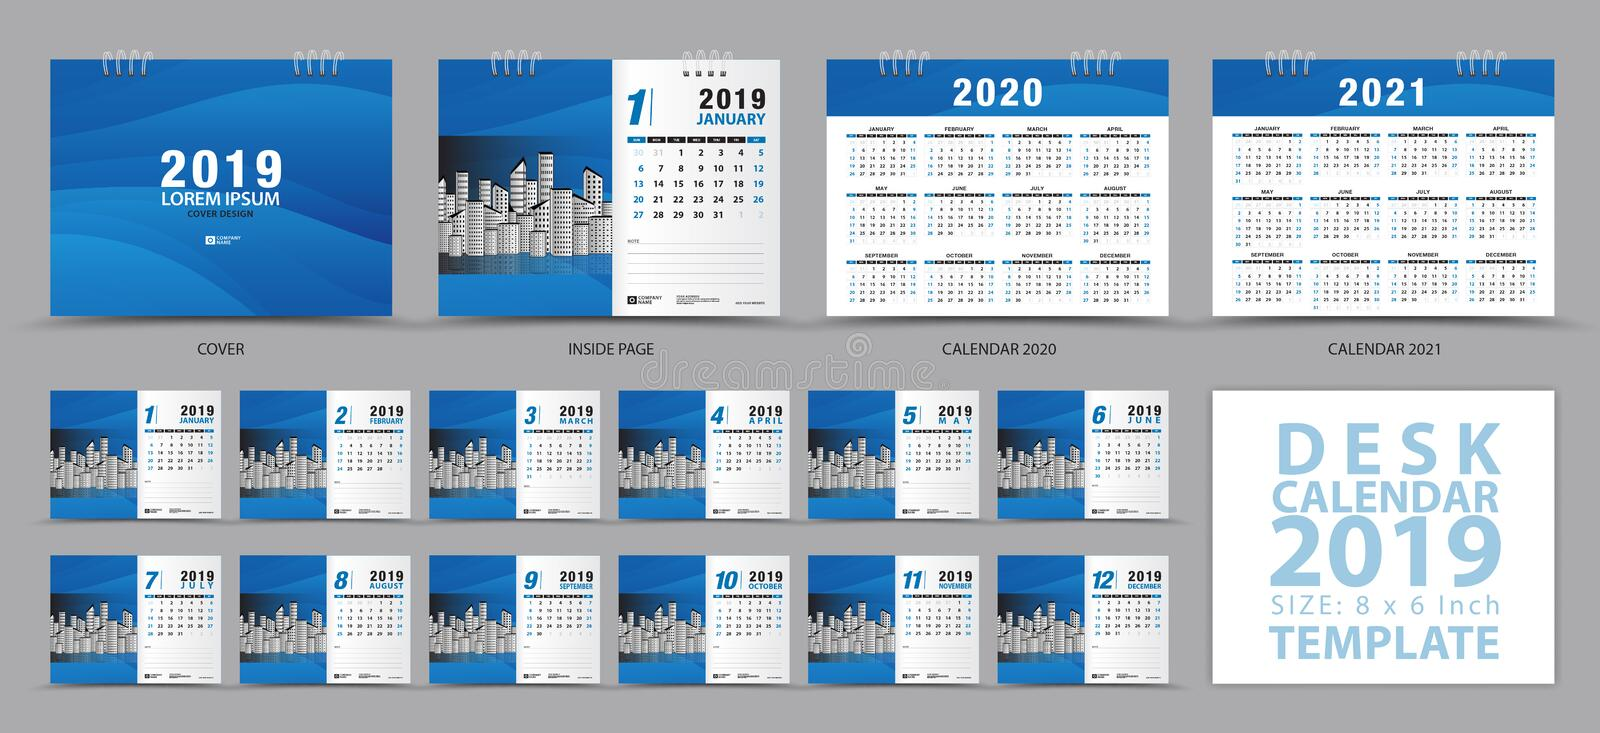 Desk calendar 2019 template, Set of 12 Months, Calendar 2019, 2020, 2021 artwork, Planner, Week starts on Sunday royalty free illustration